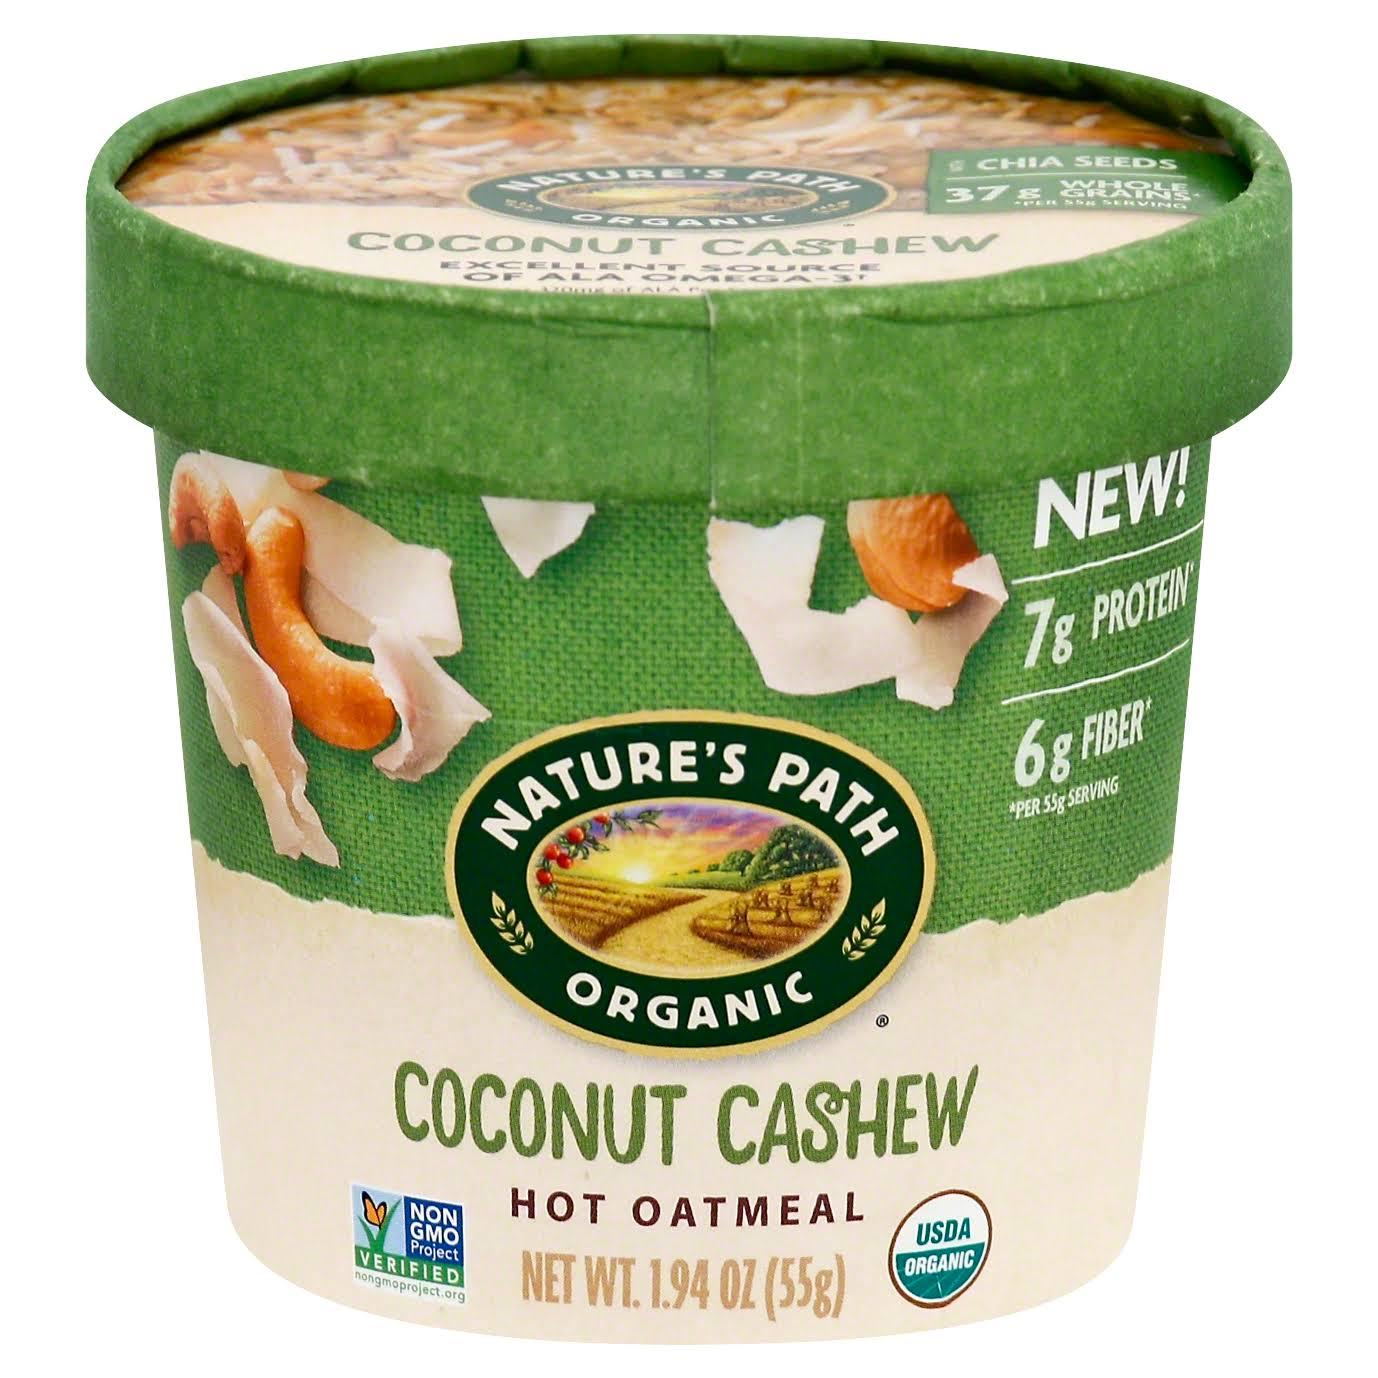 Natures Path Organic Oatmeal, Hot, Coconut Cashew - 1.94 oz